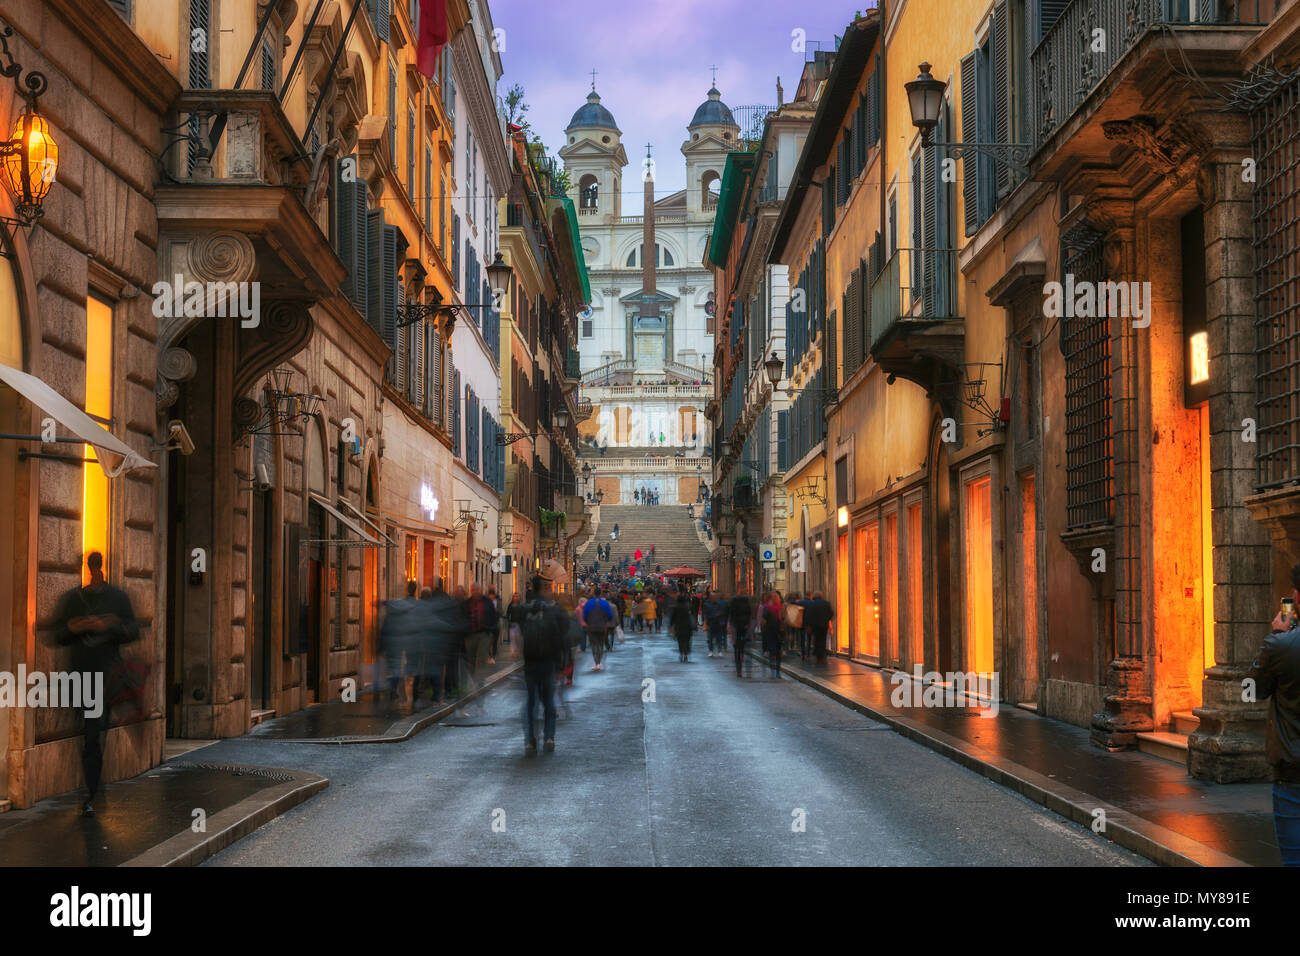 Old cozy street near Spanish Steps in Rome, Italy - Stock Image